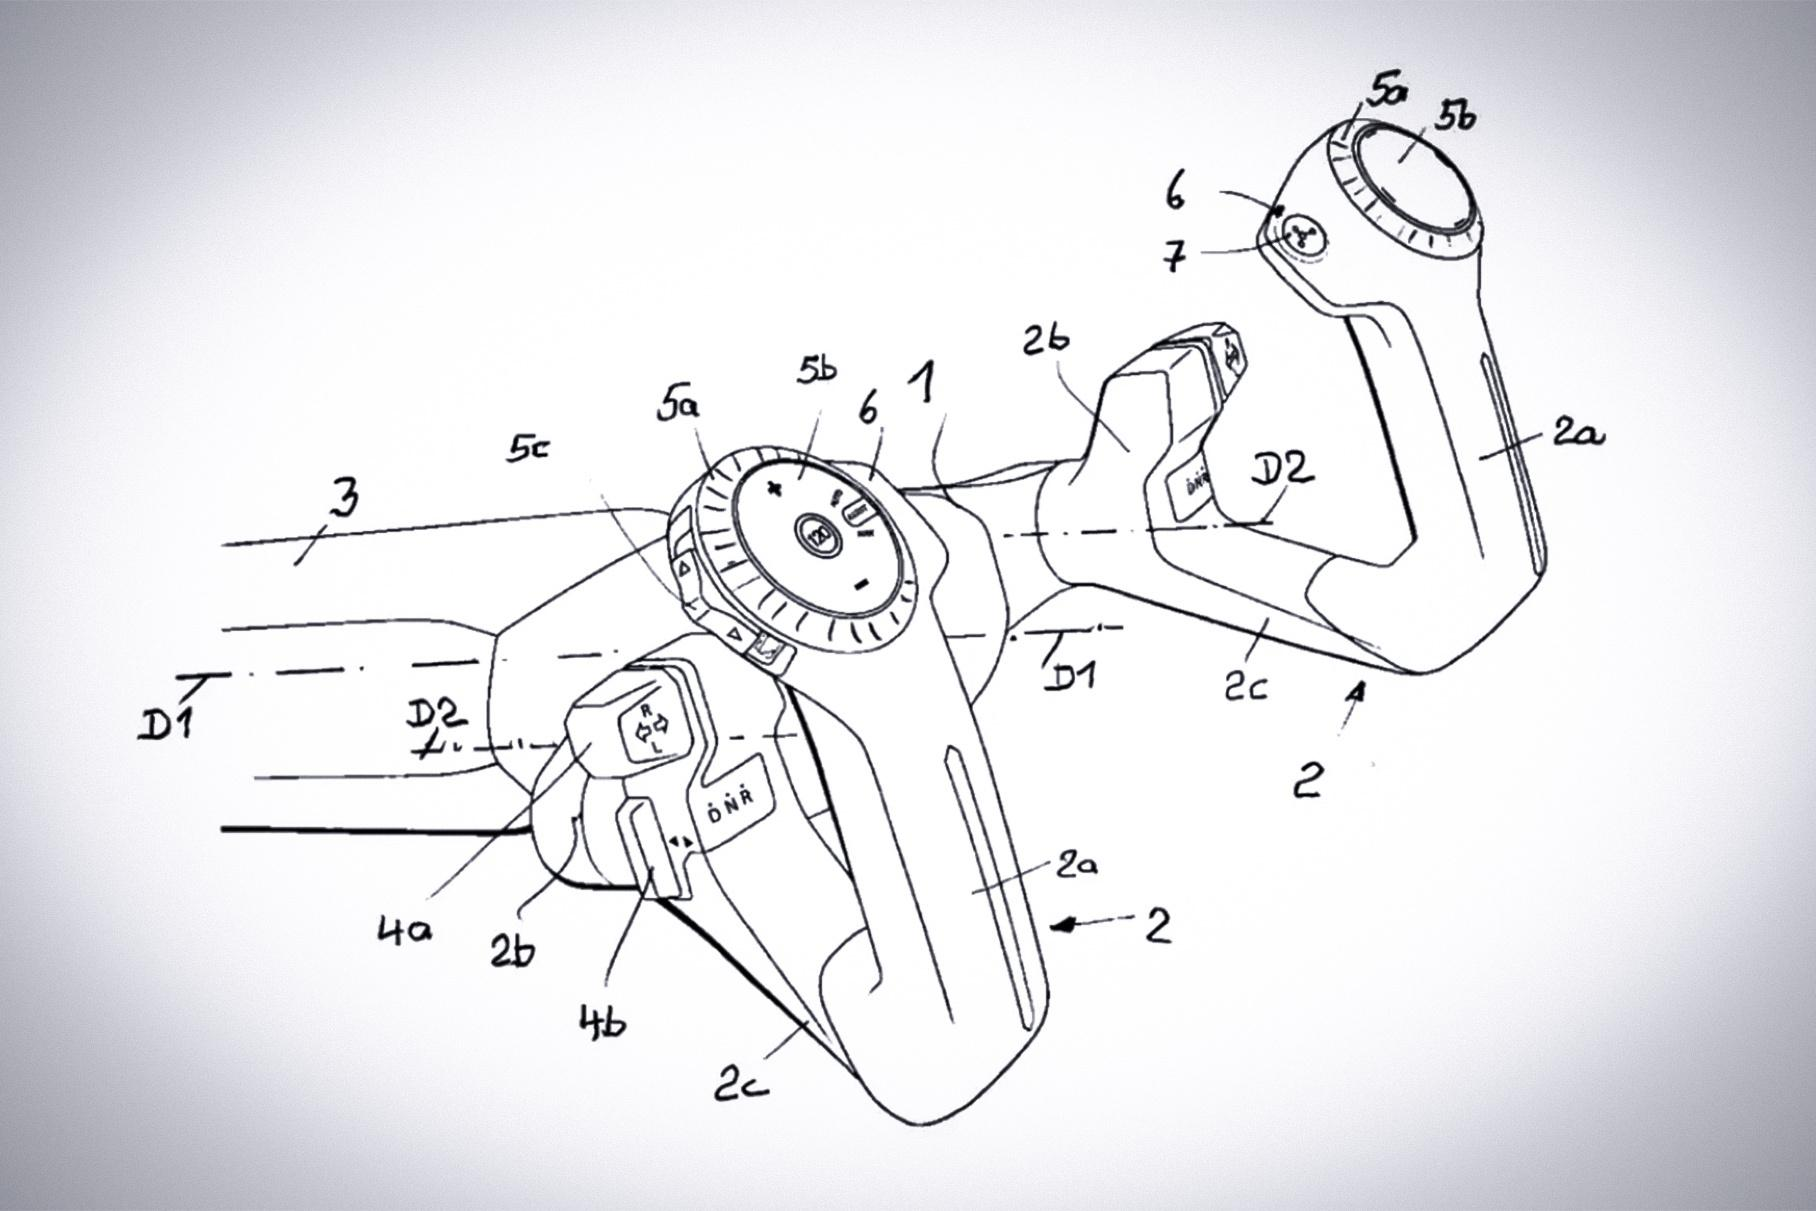 Official diagrams showing one of the latest technologies developed by BMW have surfaced in the database of a German patent office. The documents say it is a steering wheel design suitable for autonomous BMW cars.